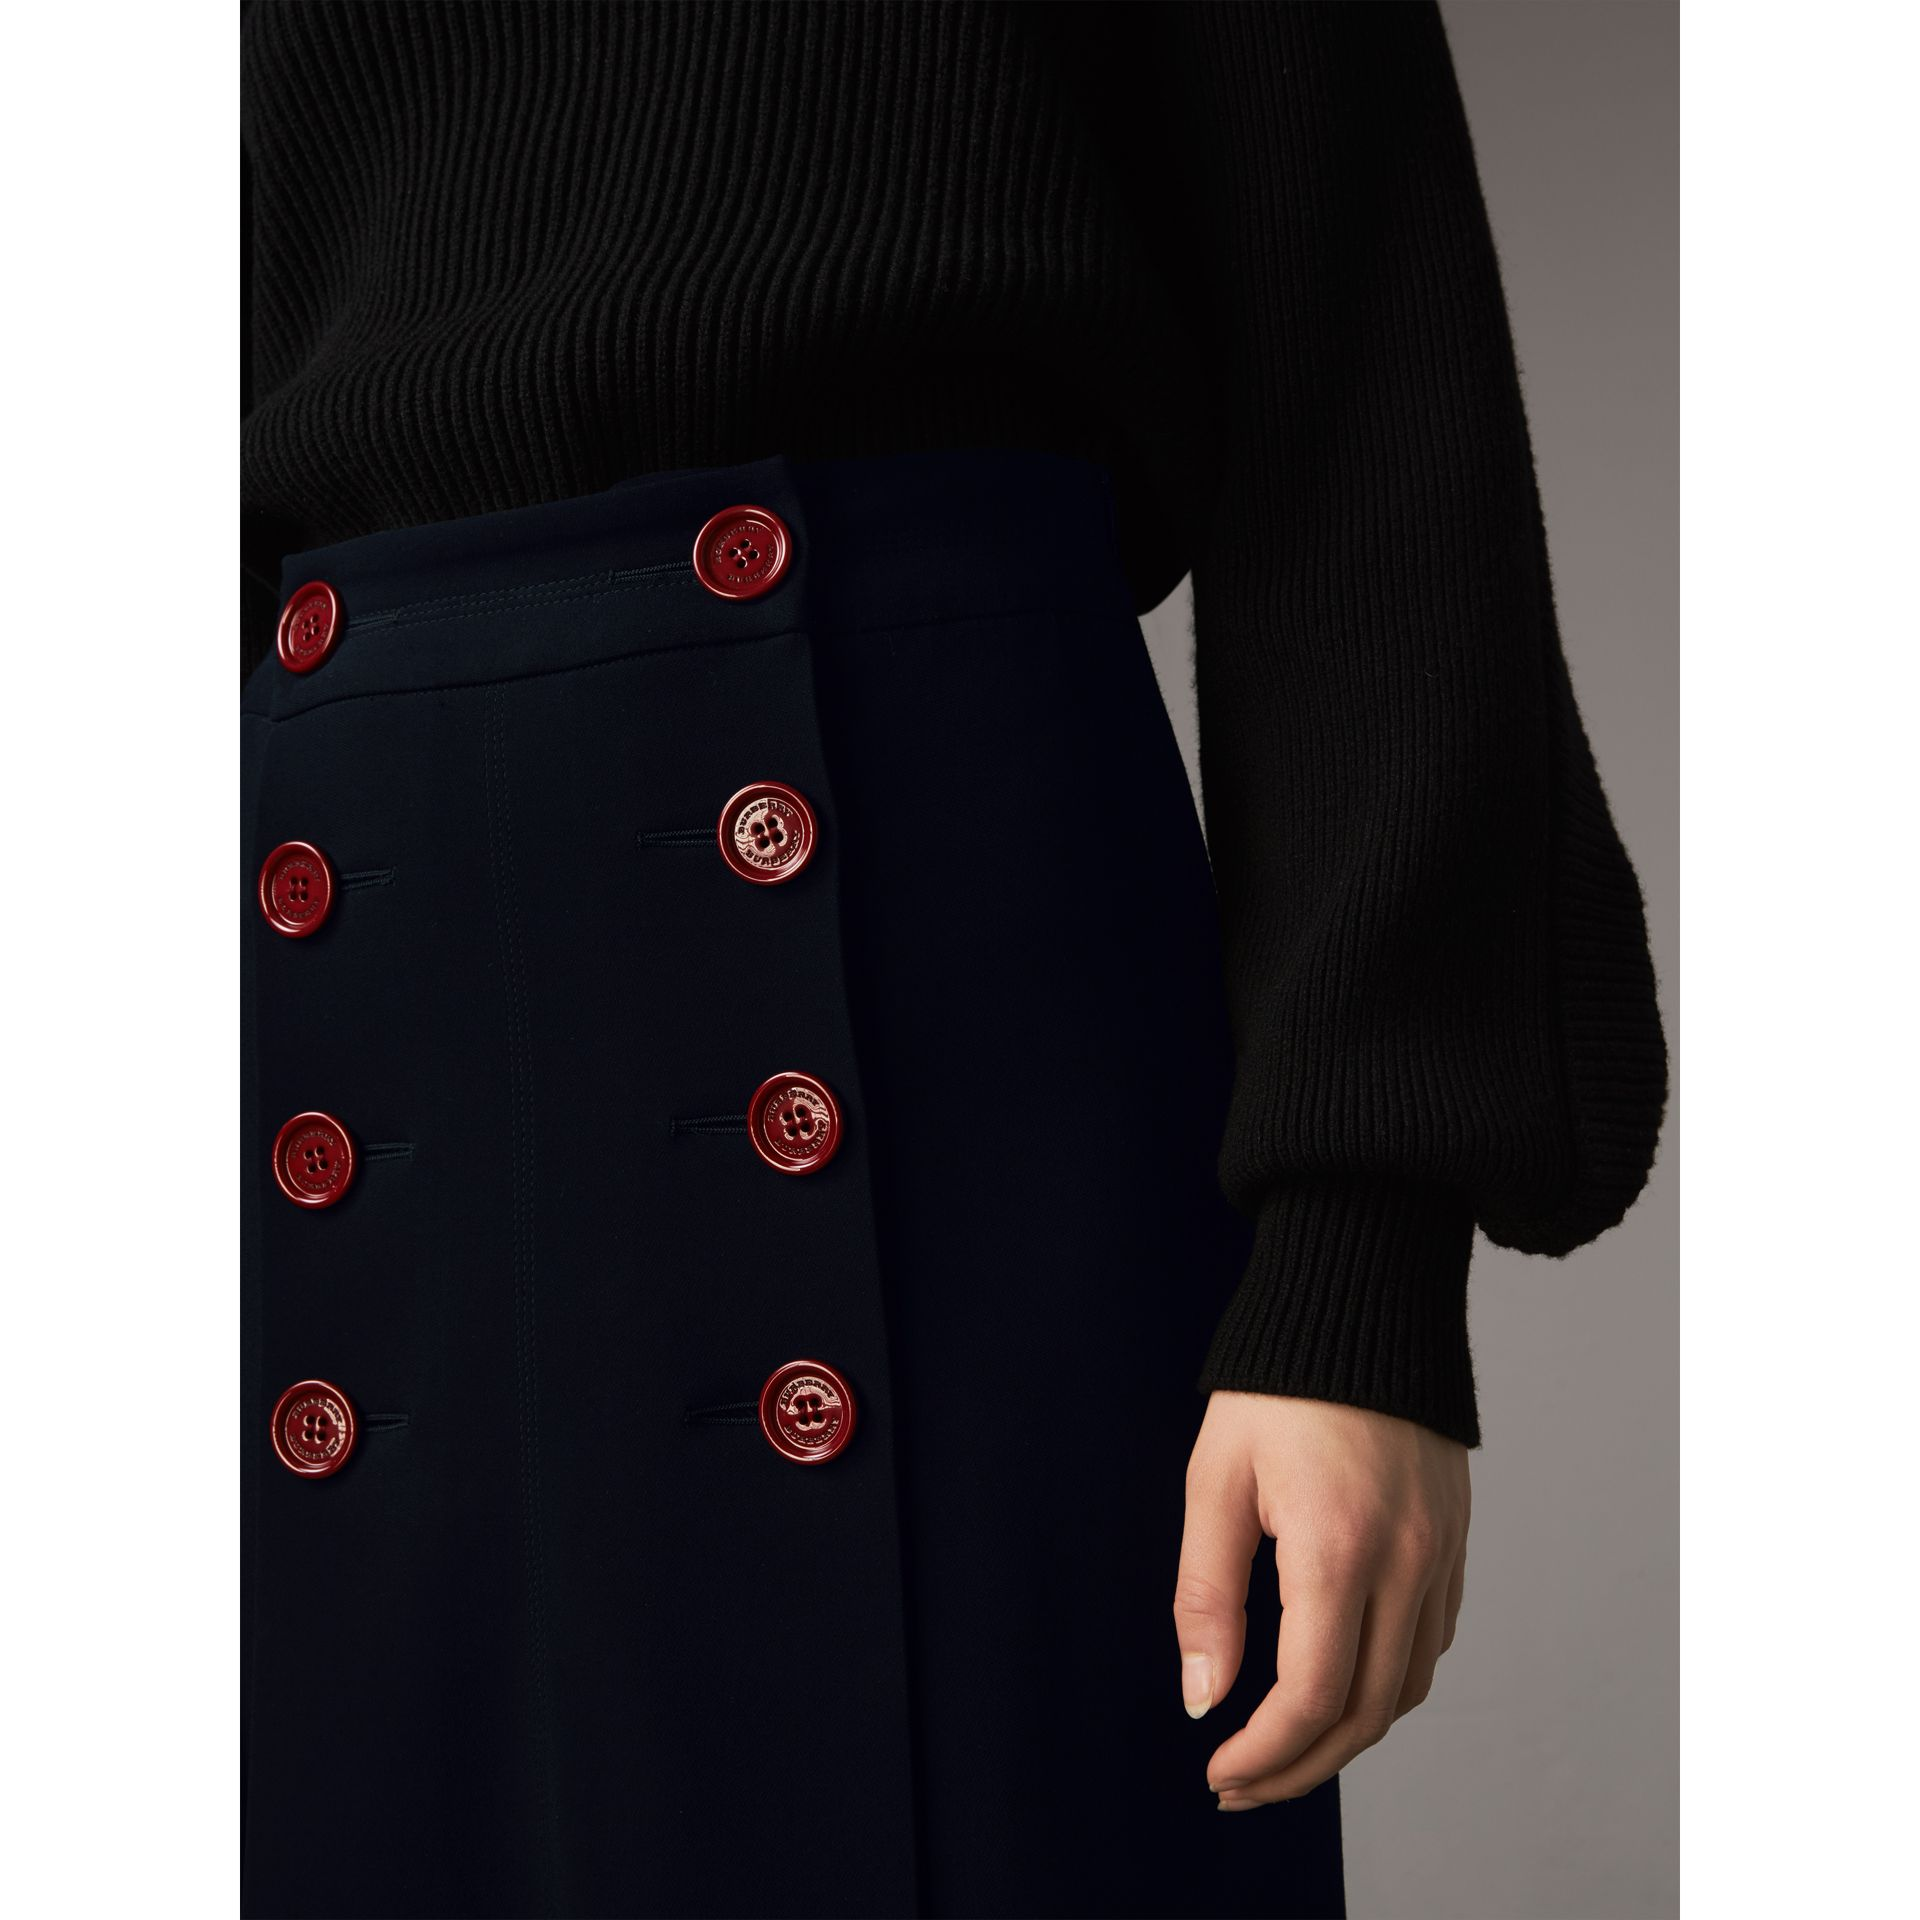 Resin Button Double-breasted Tailored Skirt in Navy - Women | Burberry Singapore - gallery image 2